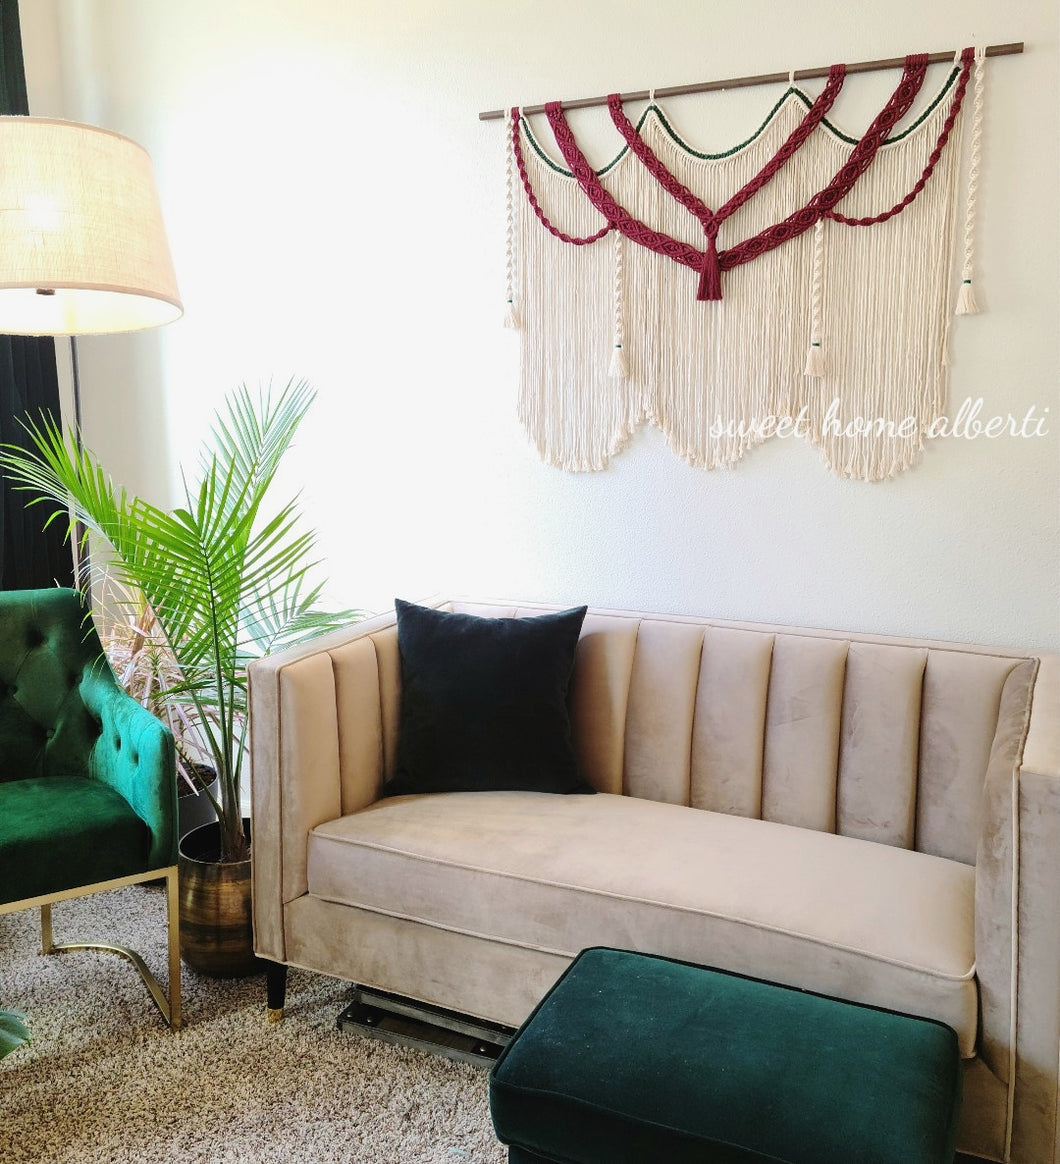 Large Macrame Wall Hanging -